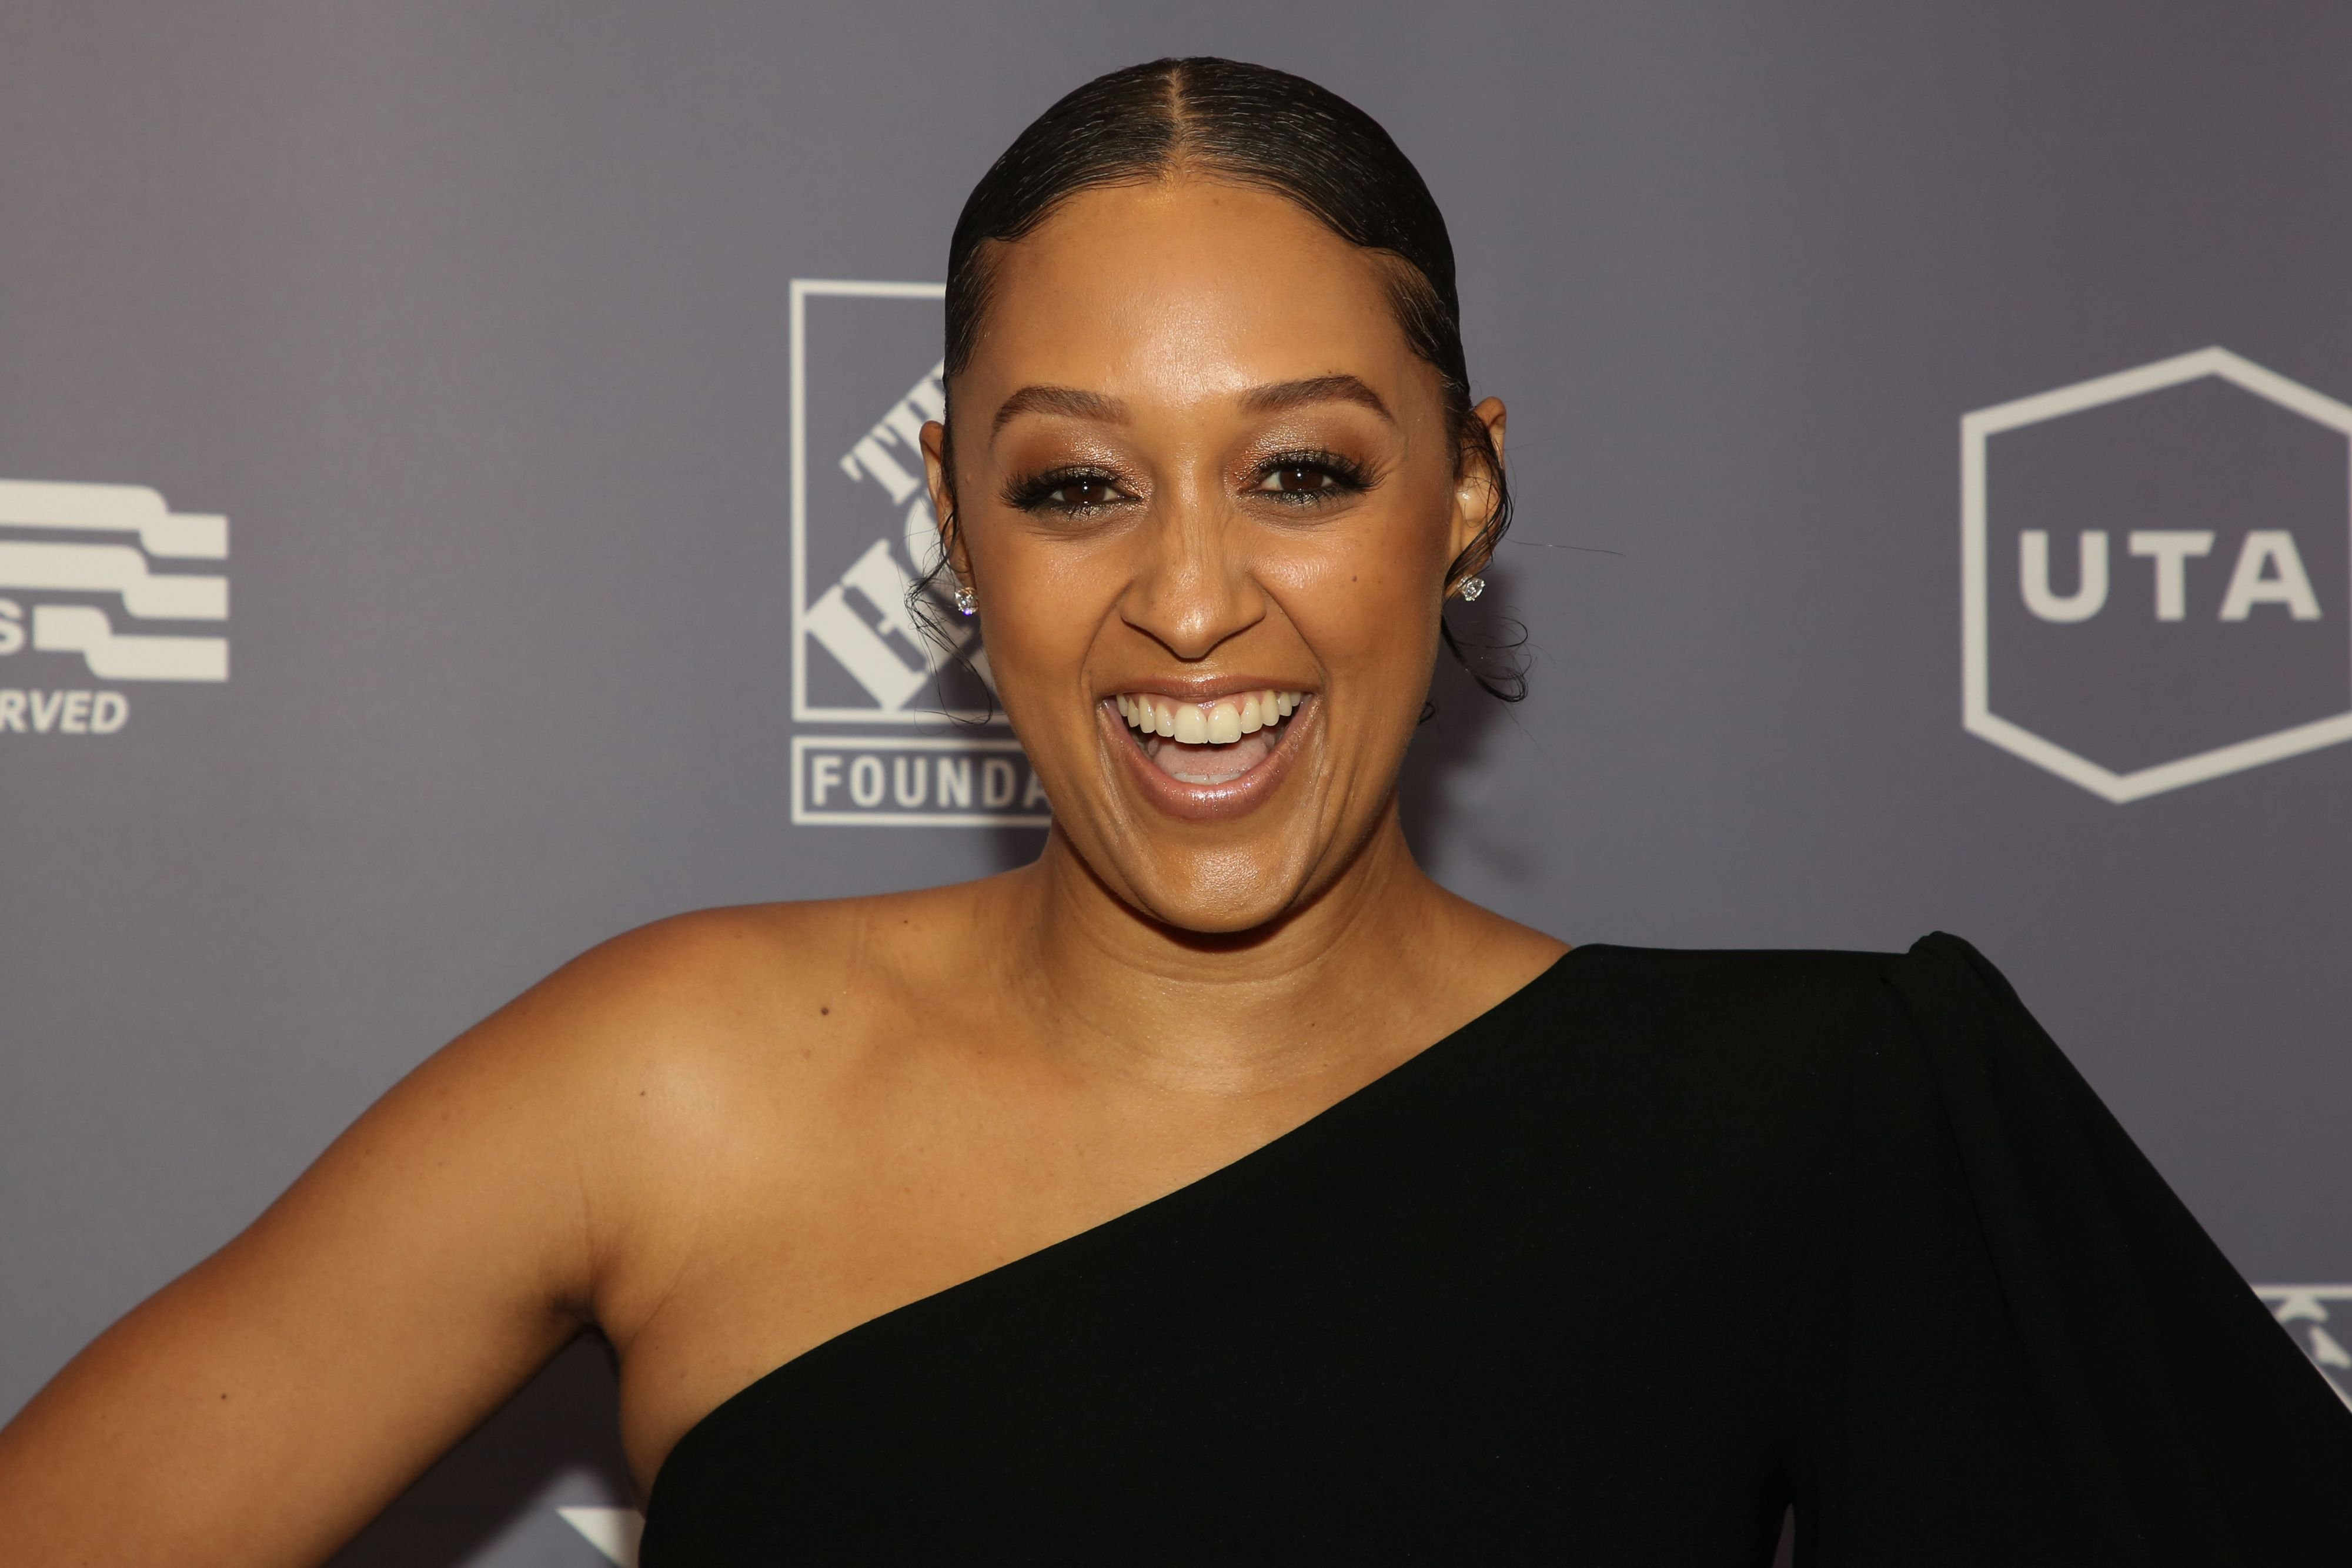 Tia Mowry at the US Vets Salute Gala on November 05, 2019 in Beverly Hills. | Photo: Getty Images